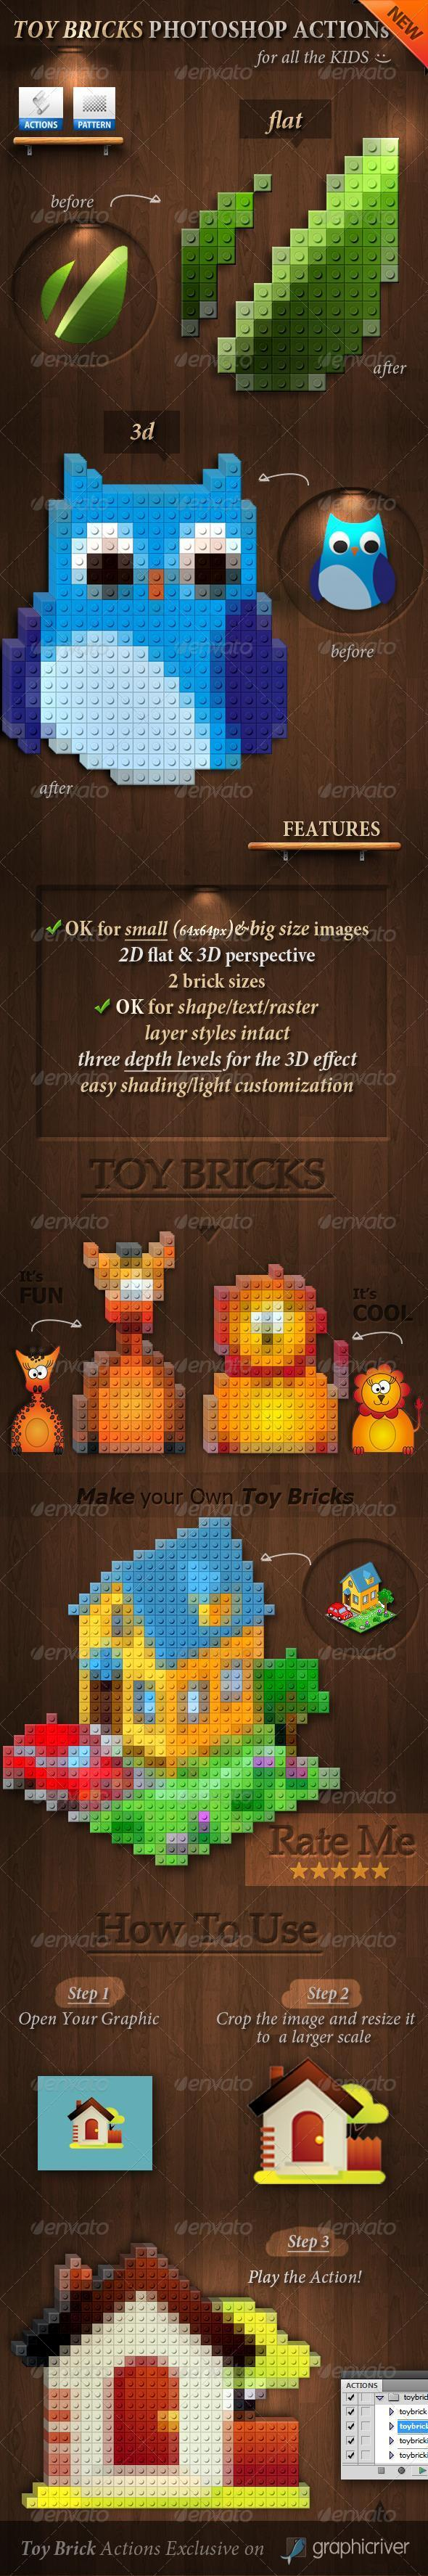 GraphicRiver 3D Toy Bricks Photoshop Actions 3924994